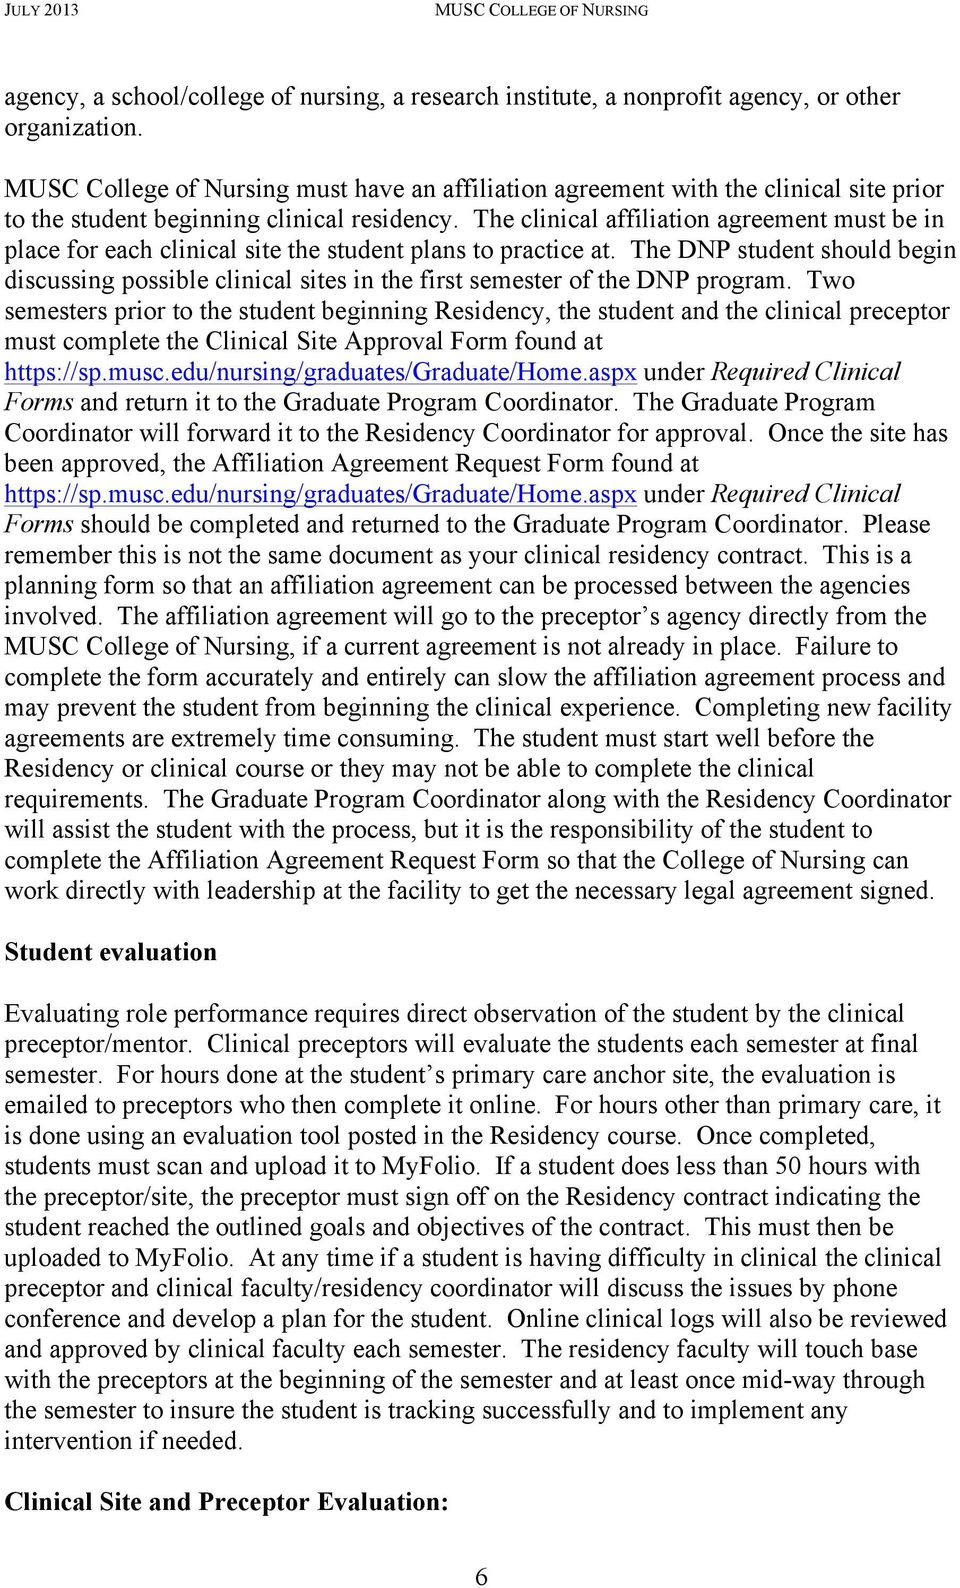 The clinical affiliation agreement must be in place for each clinical site the student plans to practice at.